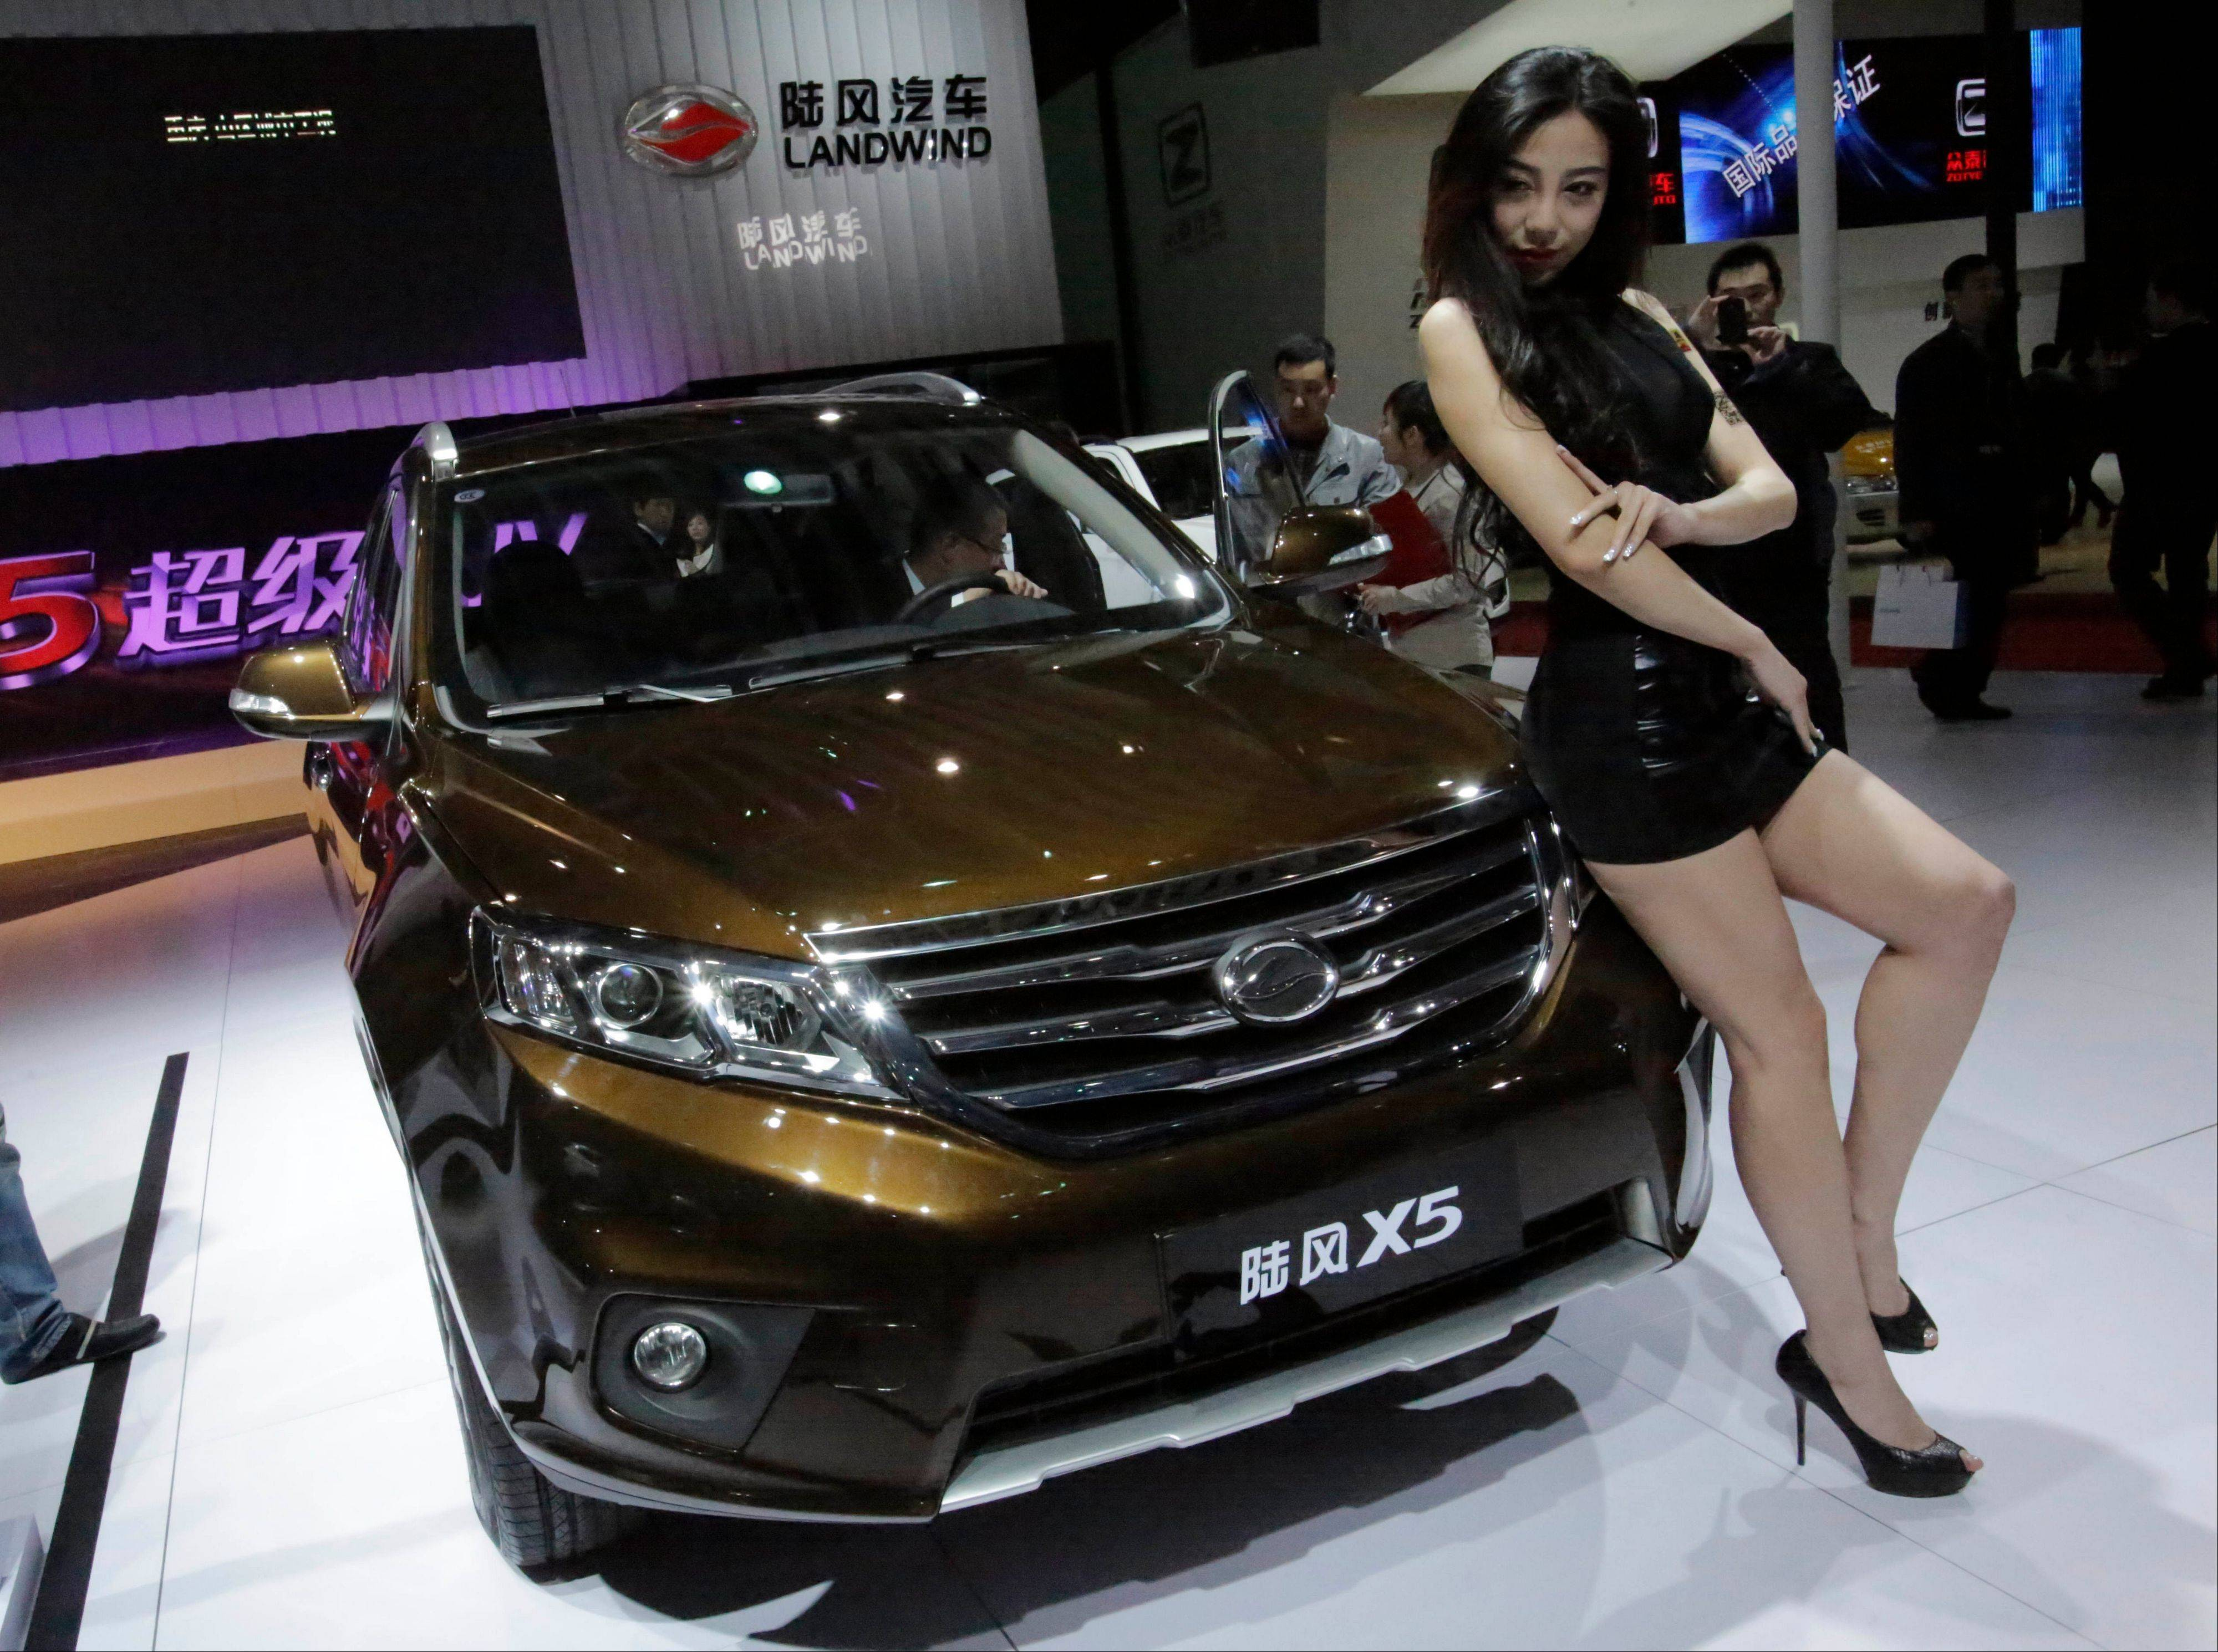 A model poses with the new Landwind X5 SUV at the Shanghai International Automobile Industry Exhibition (AUTO Shanghai) media day in Shanghai, China. SUV sales in China rose 20 percent last year to 2.5 million vehicles, more than double the 8 percent growth of the overall auto market, according to LMC Automotive. SUVs made up 18 percent of all vehicles sold.